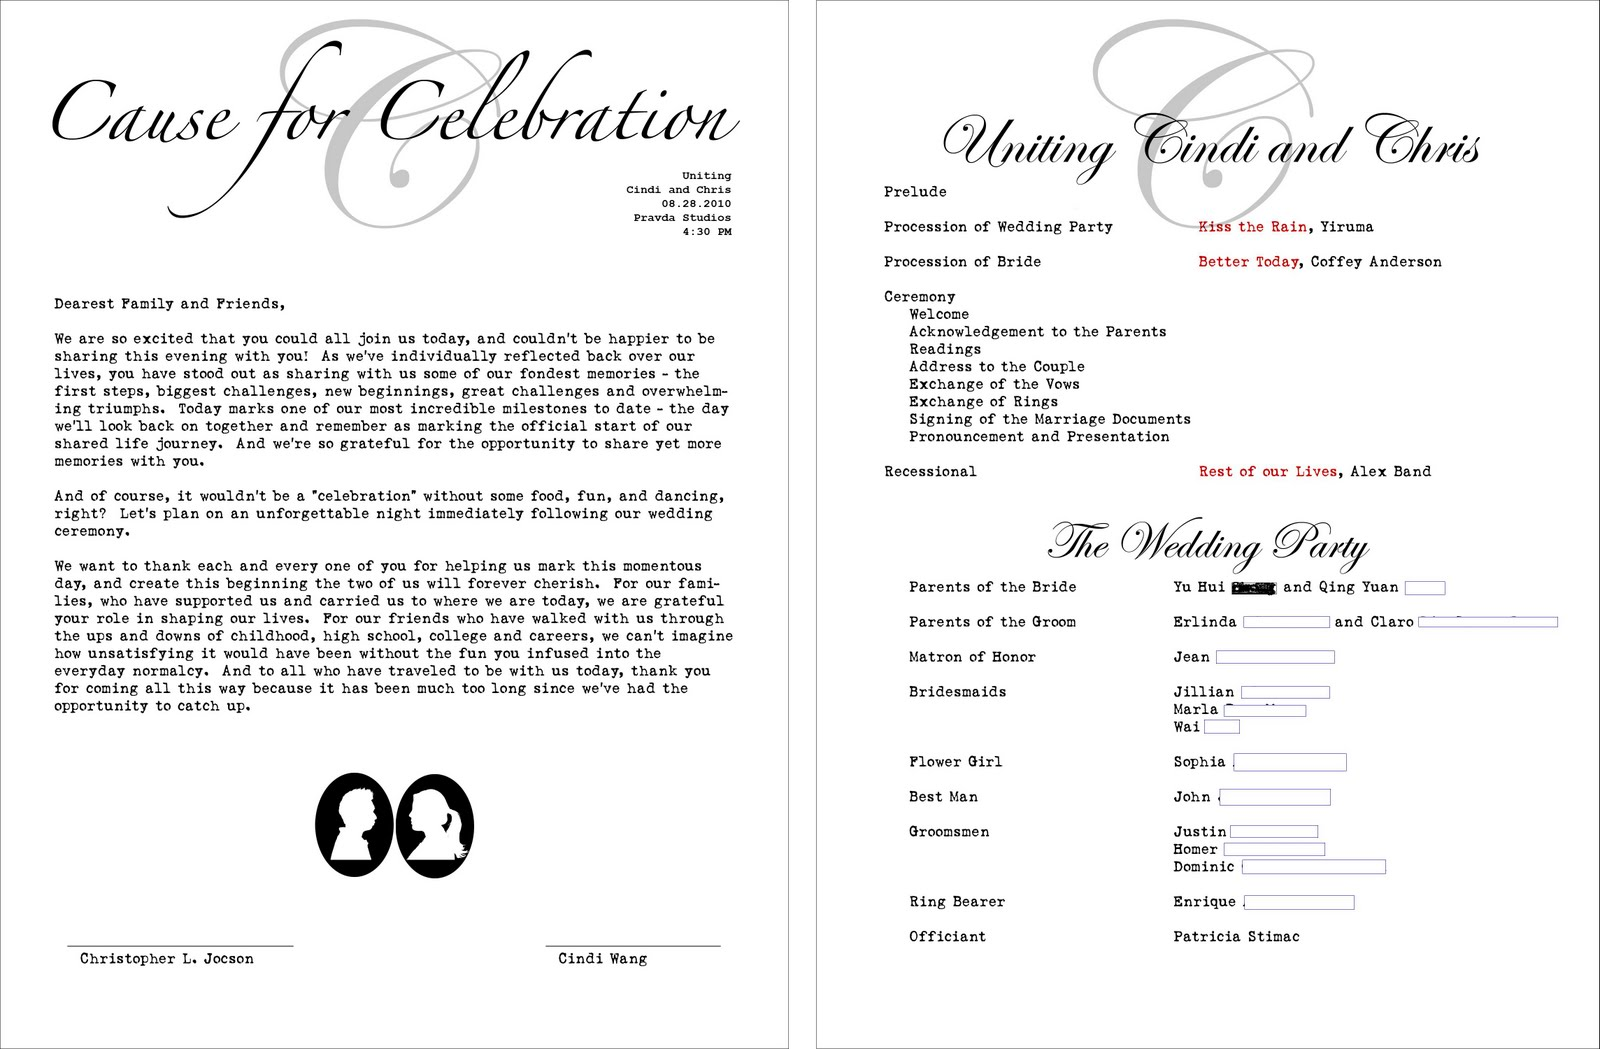 wedding program cover pictures